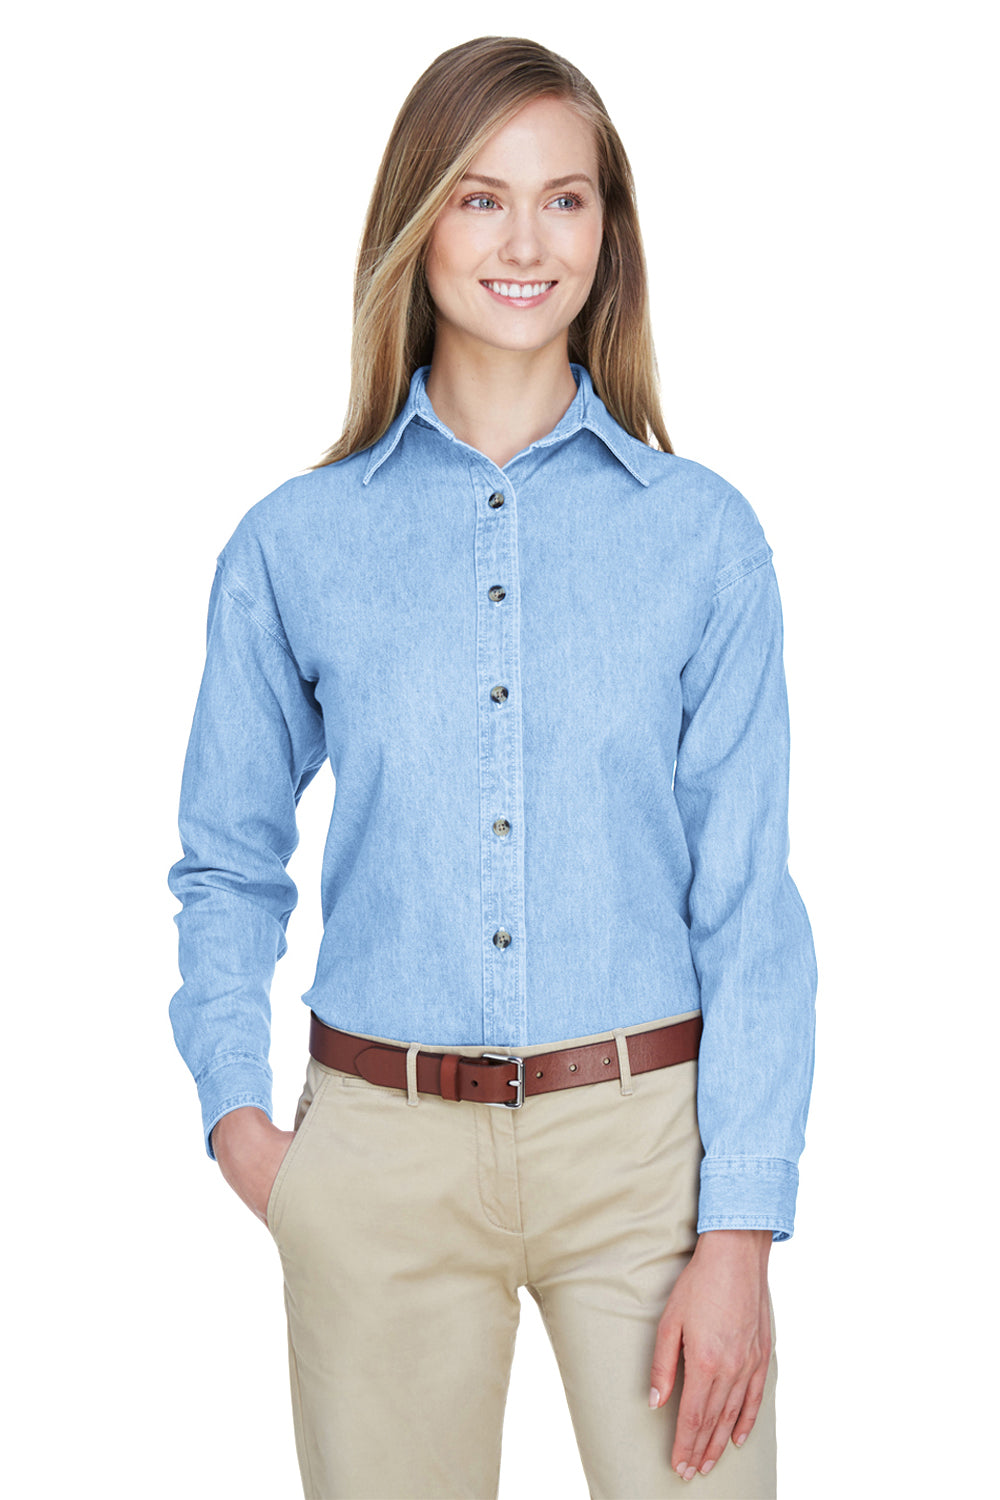 UltraClub 8966 Womens Cypress Denim Long Sleeve Button Down Shirt Light Blue Front